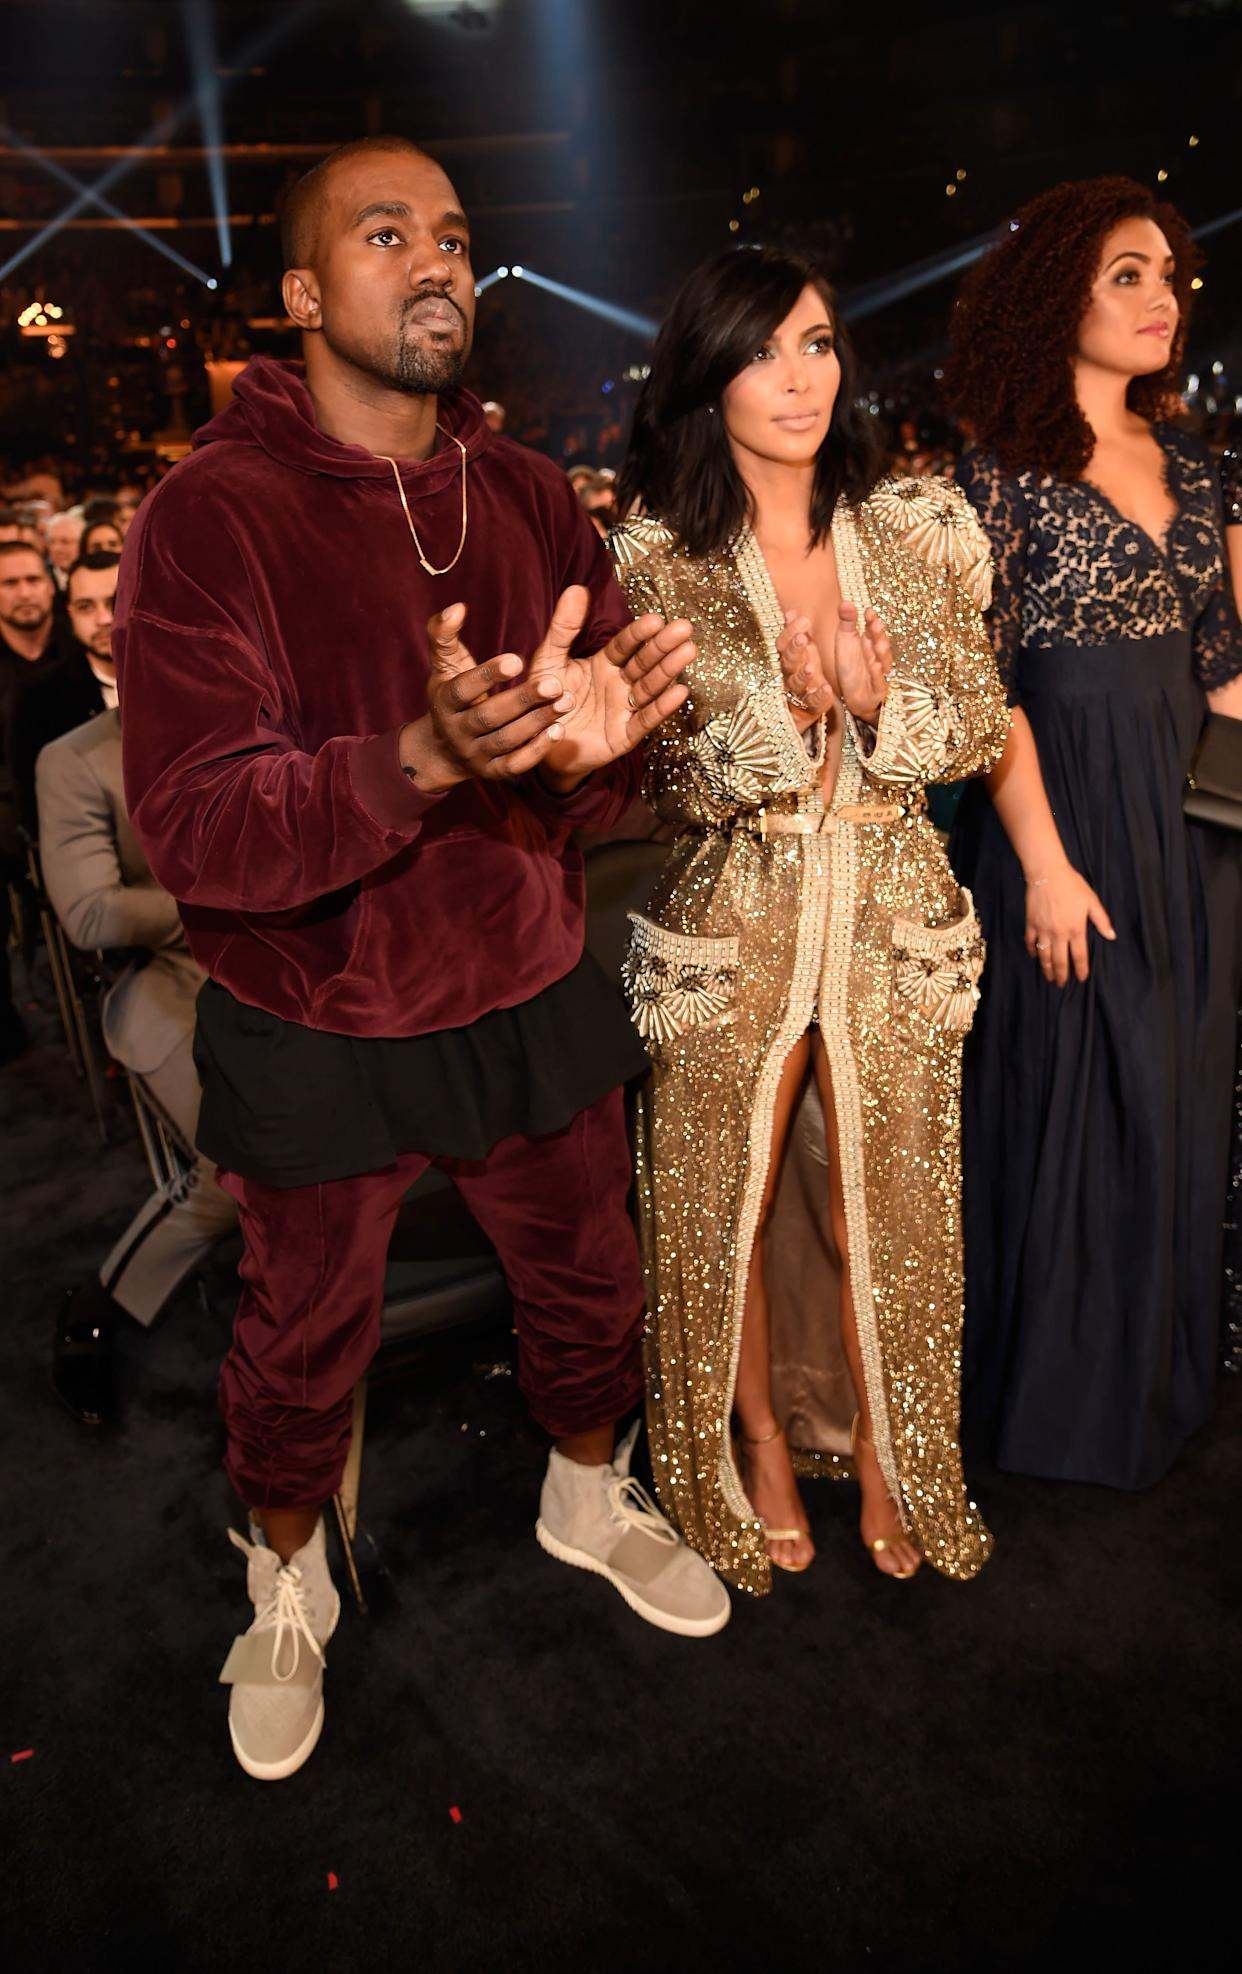 Another look at the57th Annual GRAMMY Awards on February 8 Los Angeles.